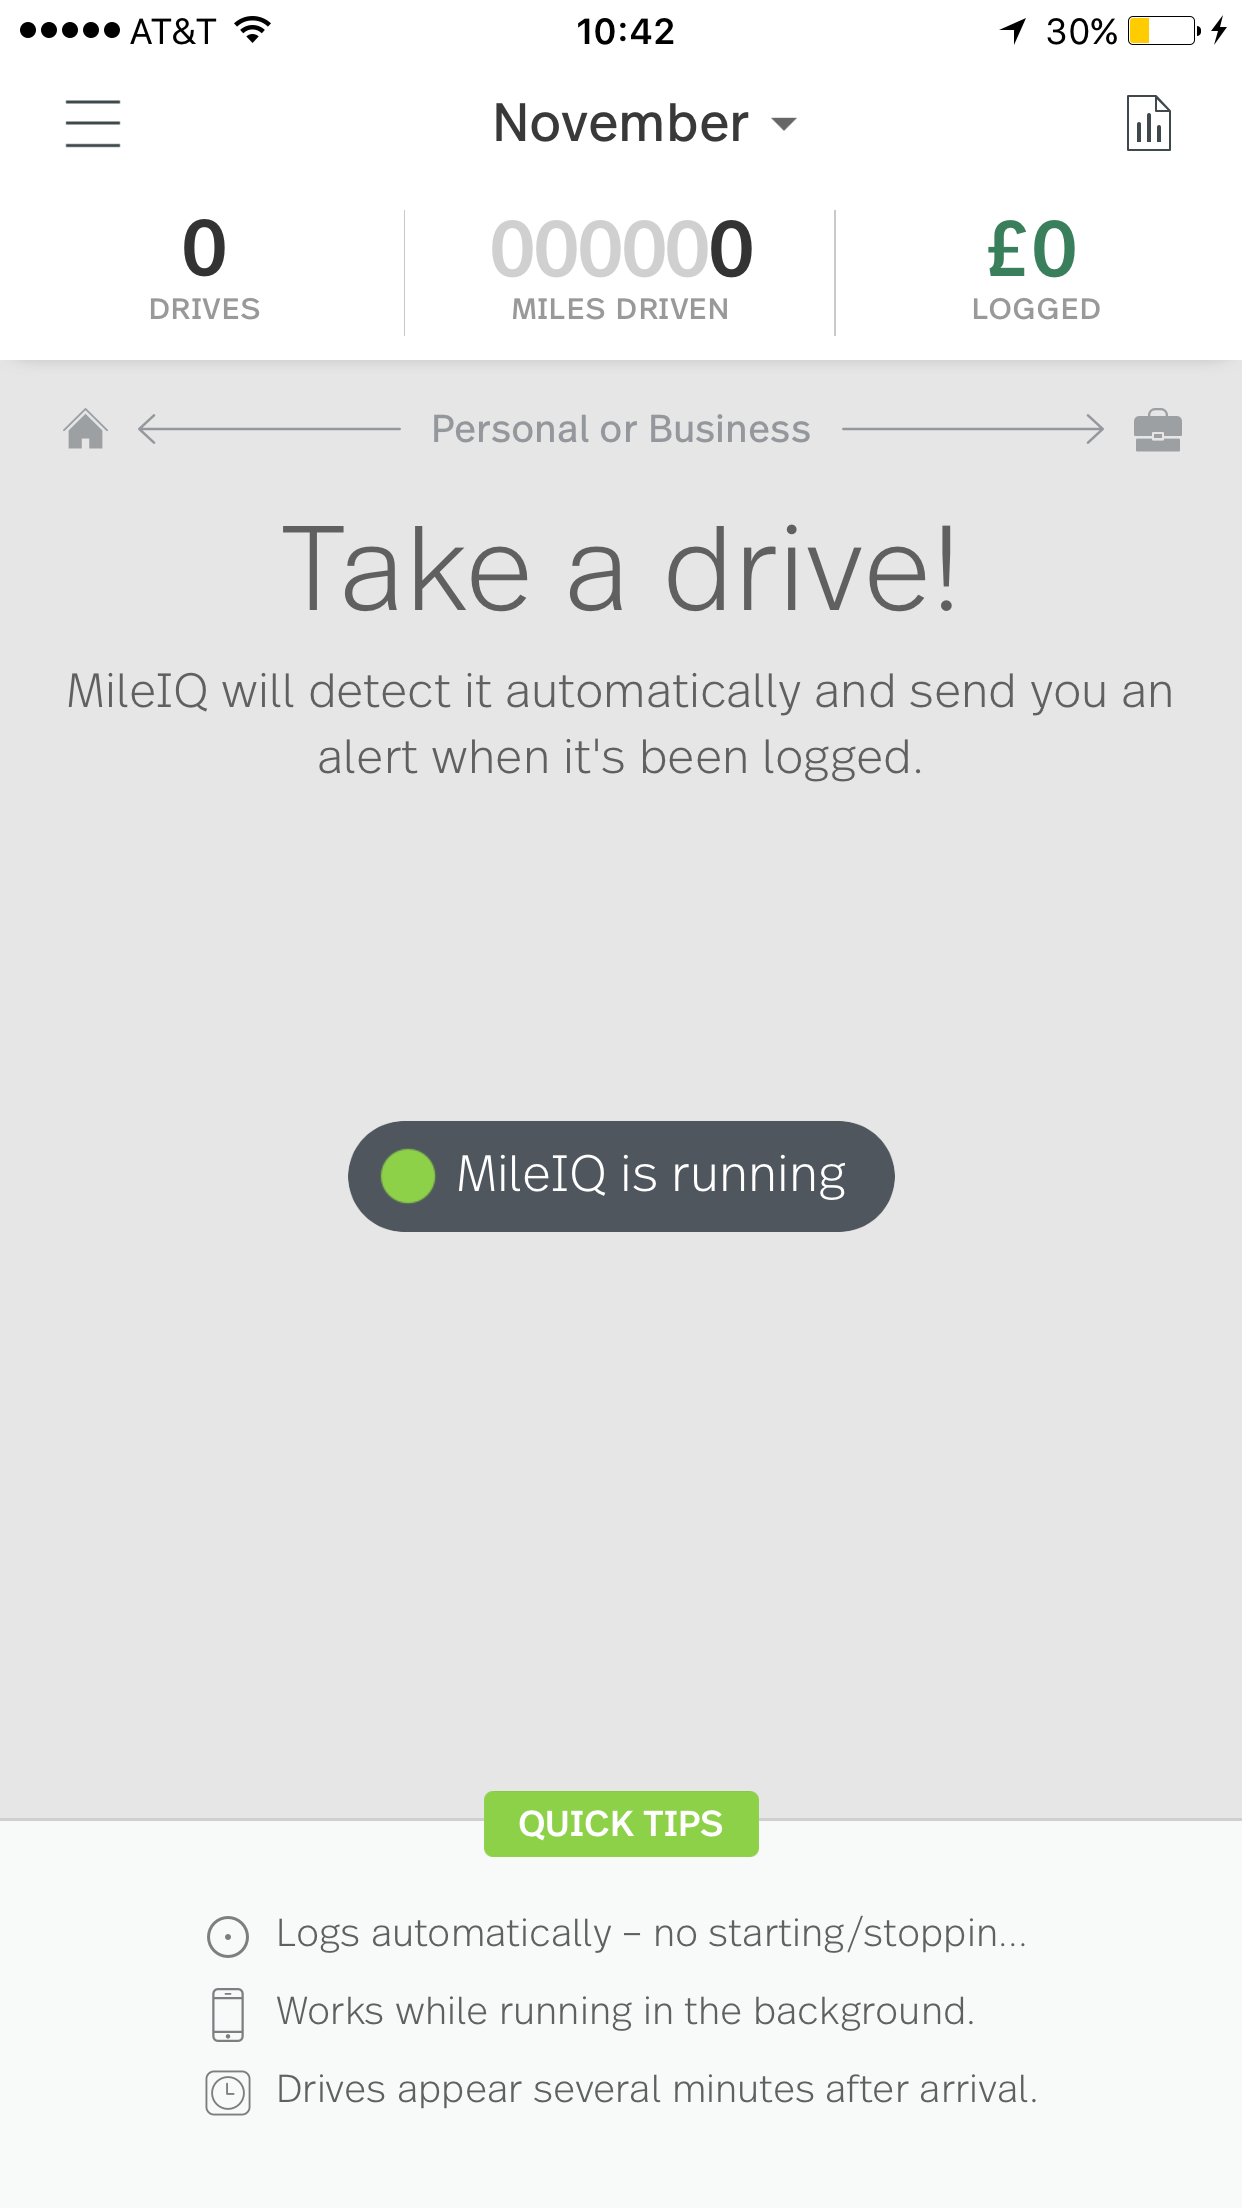 This image shows the Take a drive screen on the mobile app.